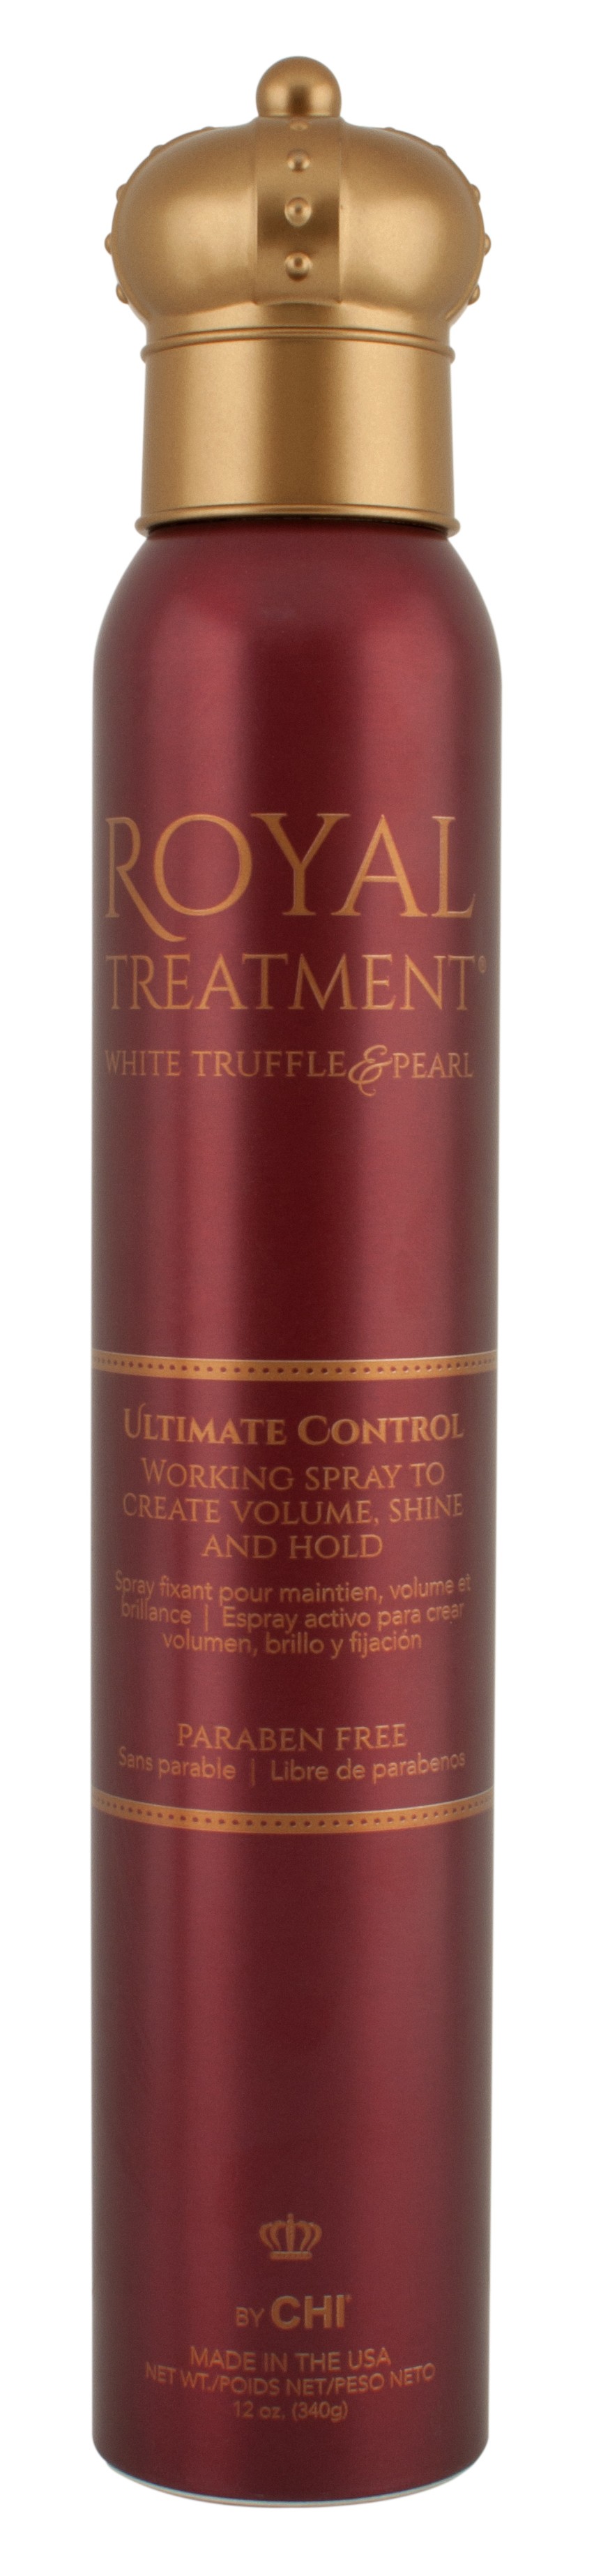 <strong>Royal Treatment Ultimate Control Hairspray:</strong> A versatile spray with white truffle and pearl provides a dual function for your styling and finishing needs.